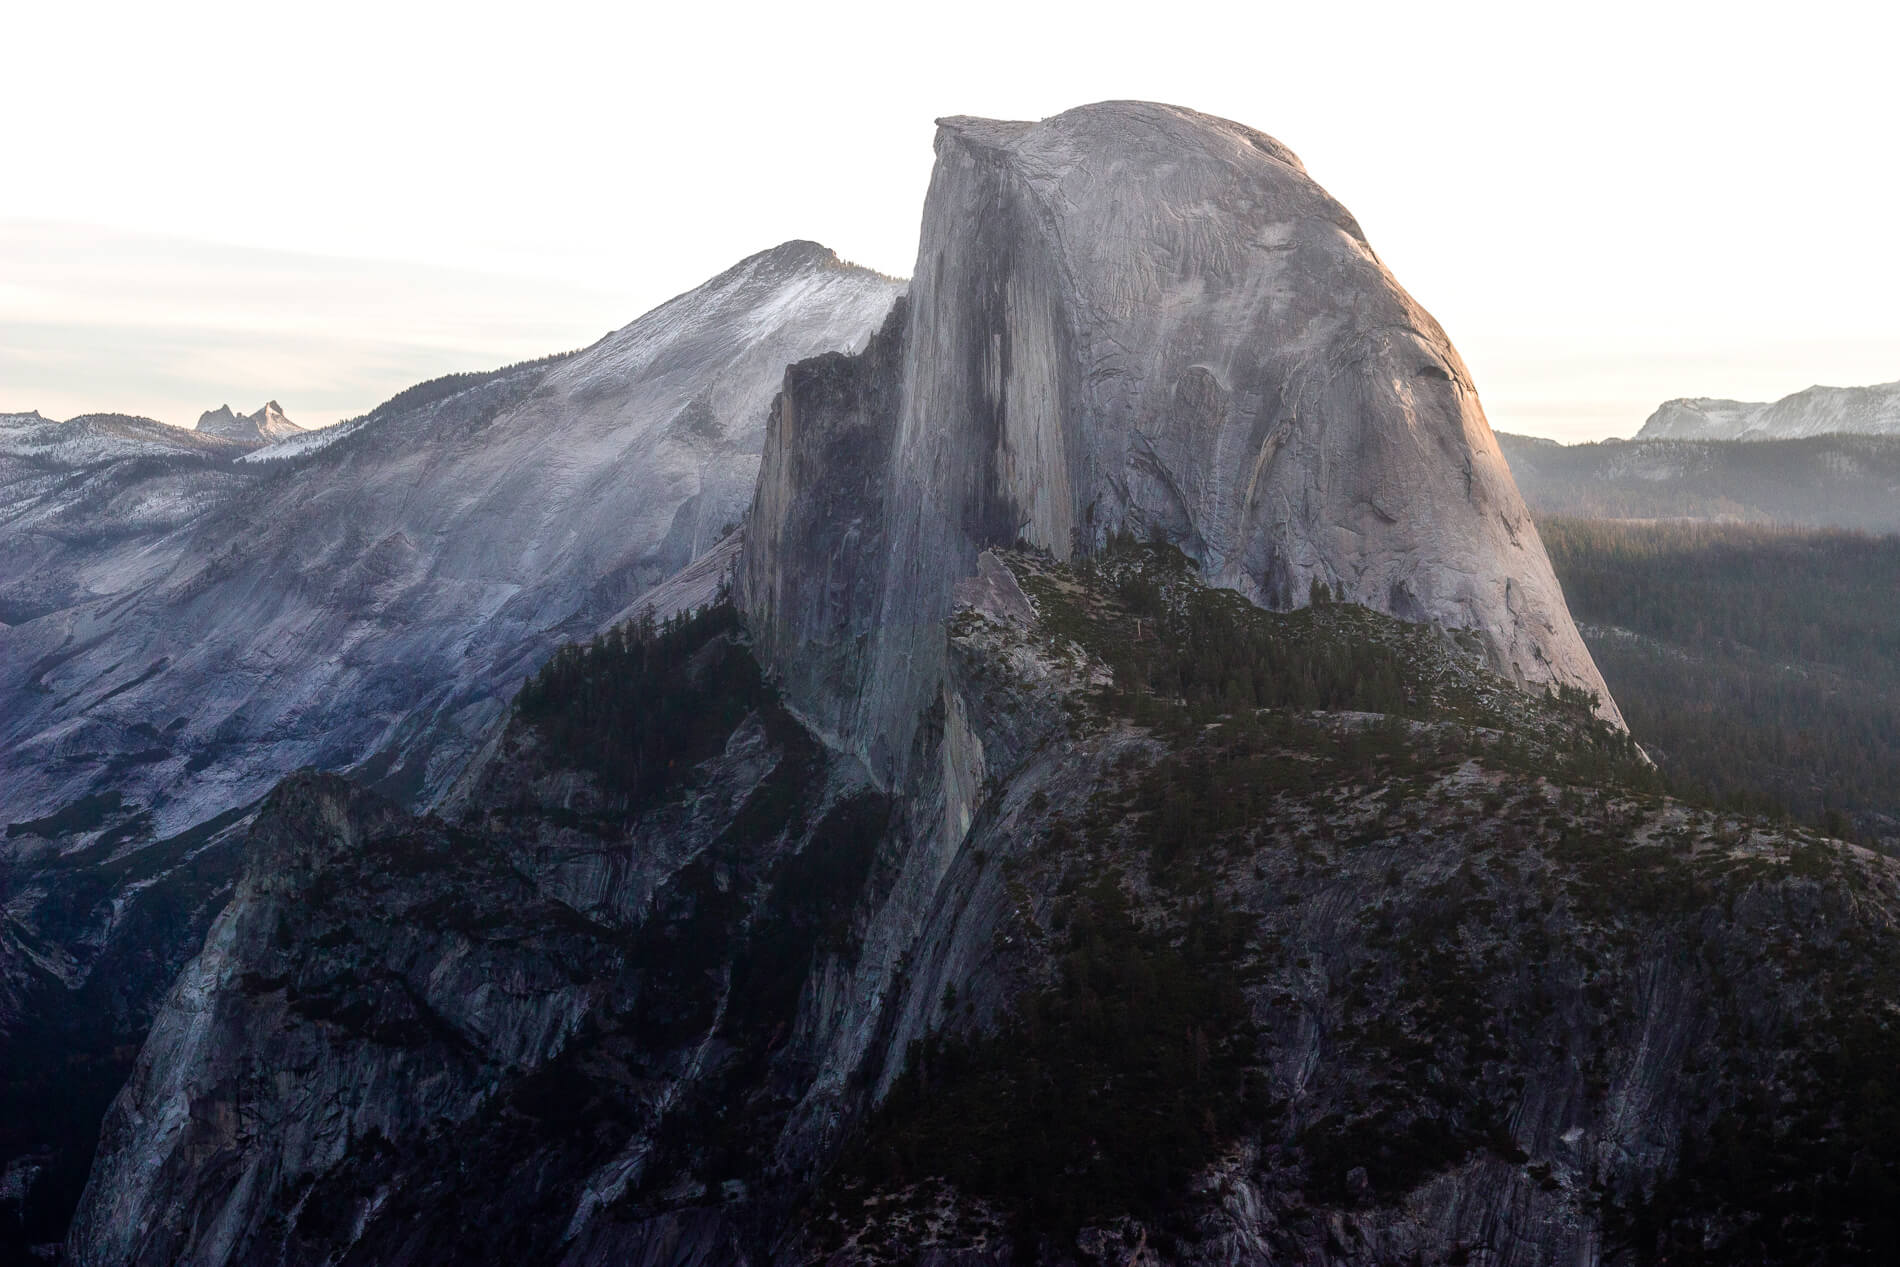 yosemite trip, yosemite trees, off the beaten path yosemite, yosemite hikes, yosemite instagram ideas, half dome